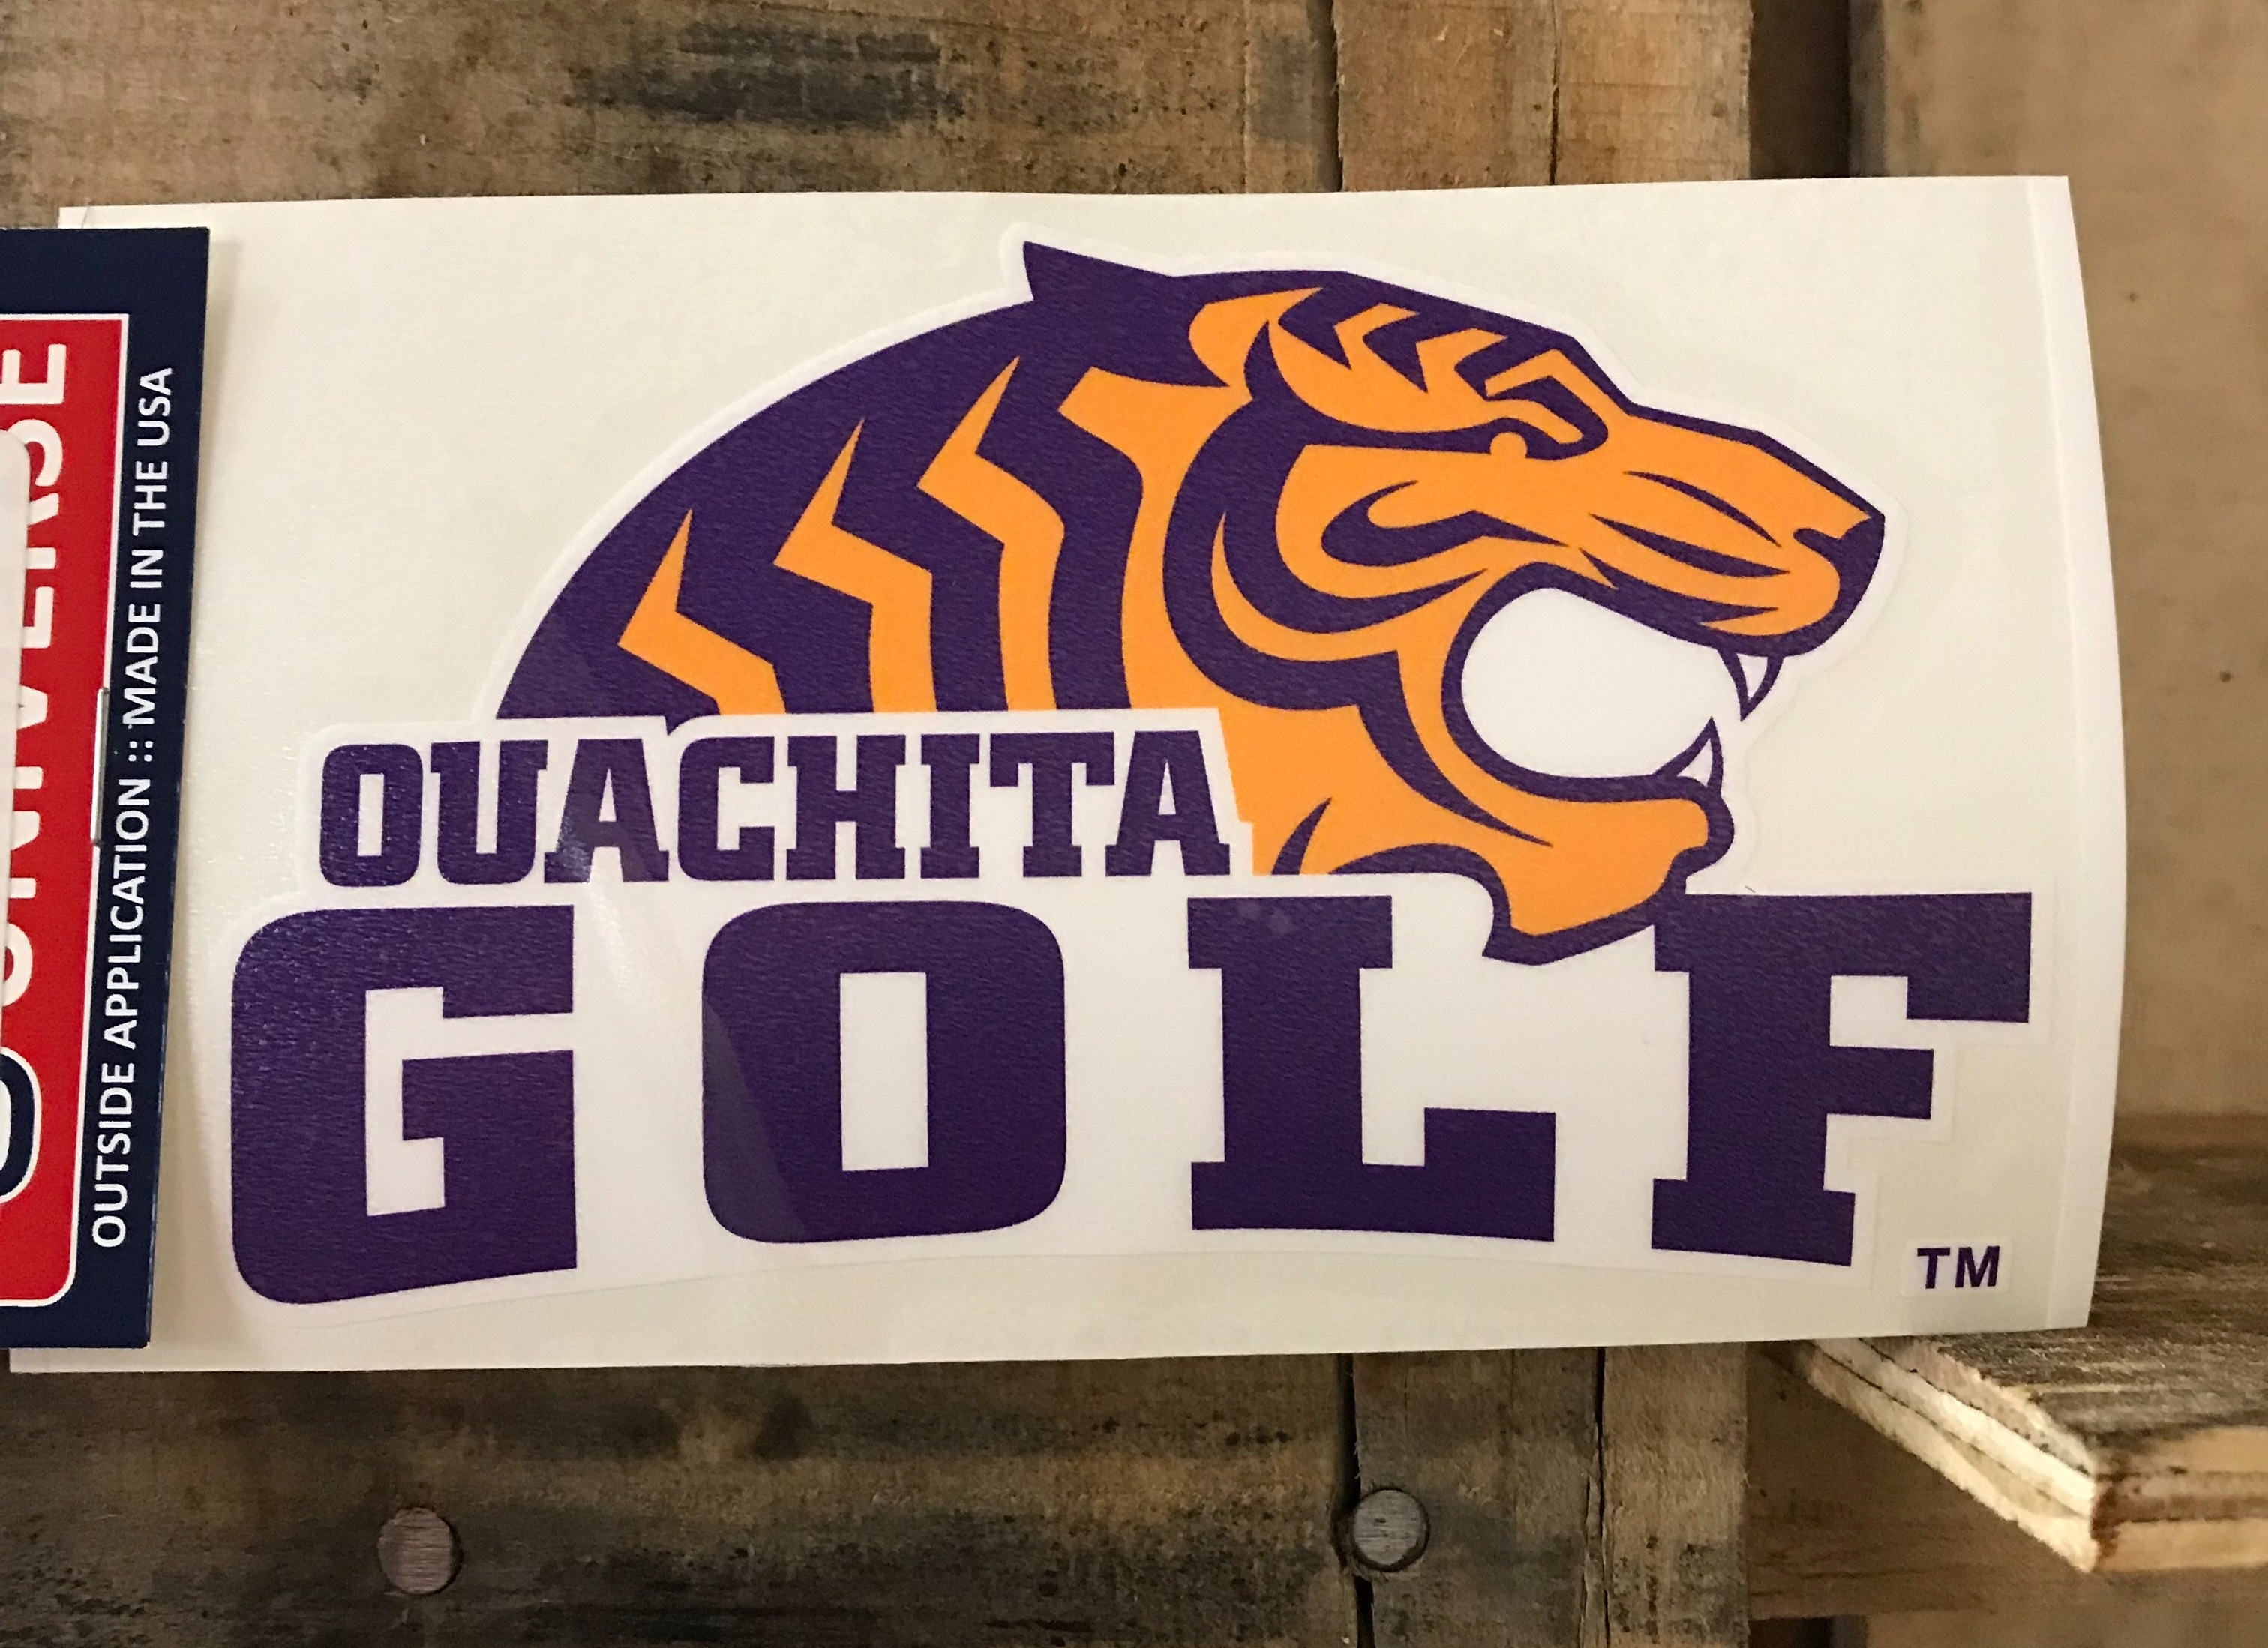 TIGER GOLF CAR DECAL